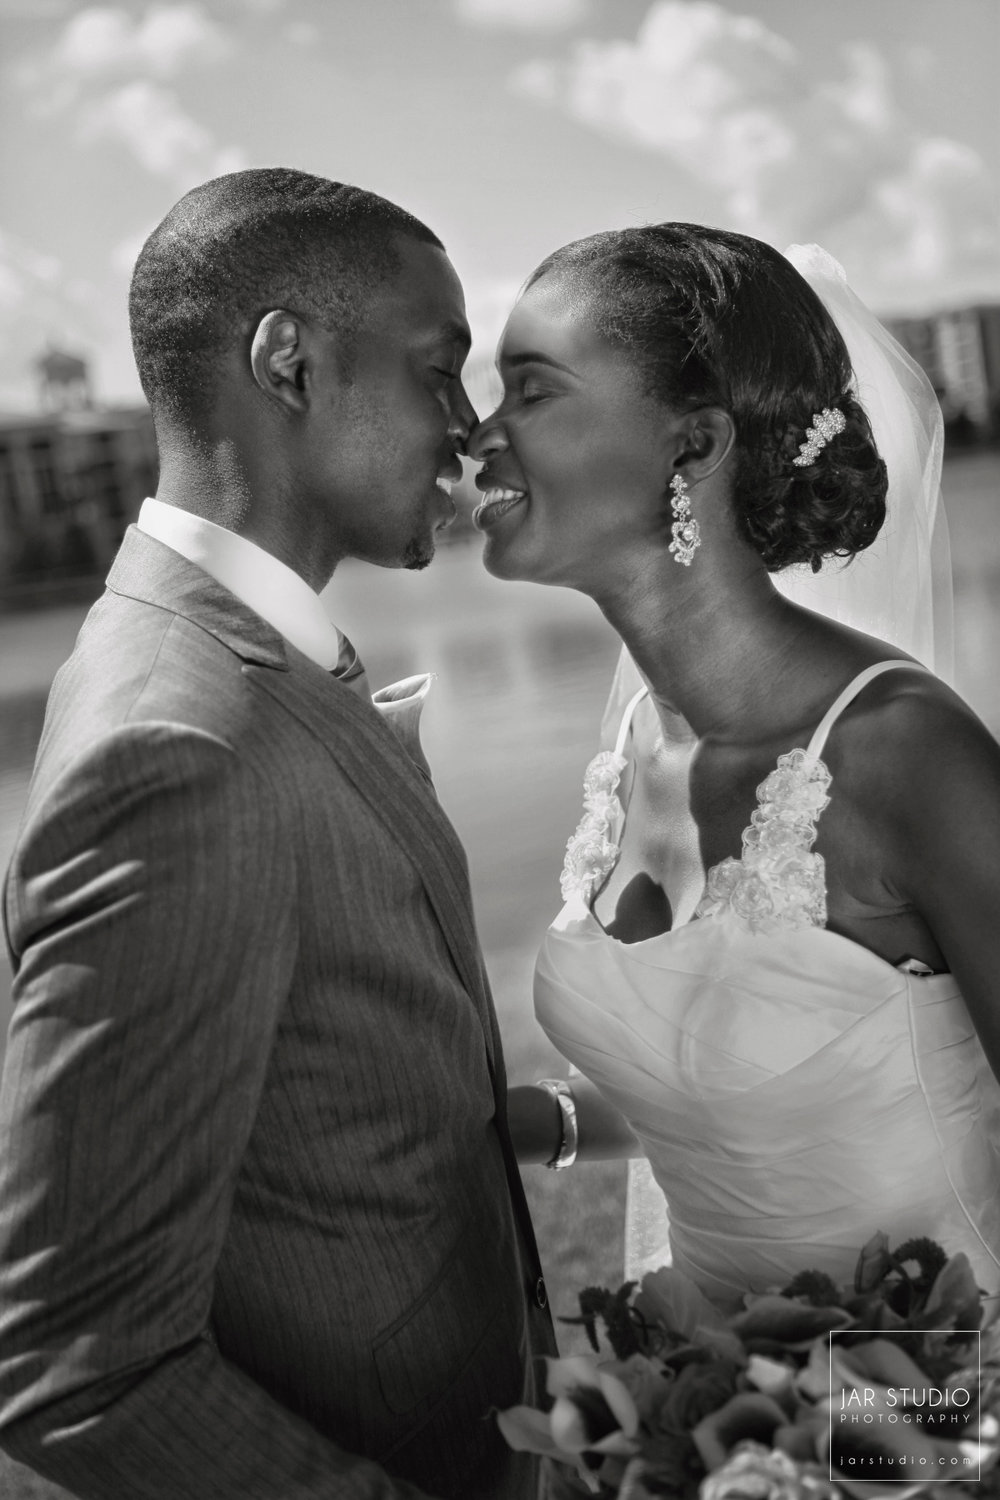 19-romantic-modern-nigerian-morning-wedding-jarstudio-photographer.JPG